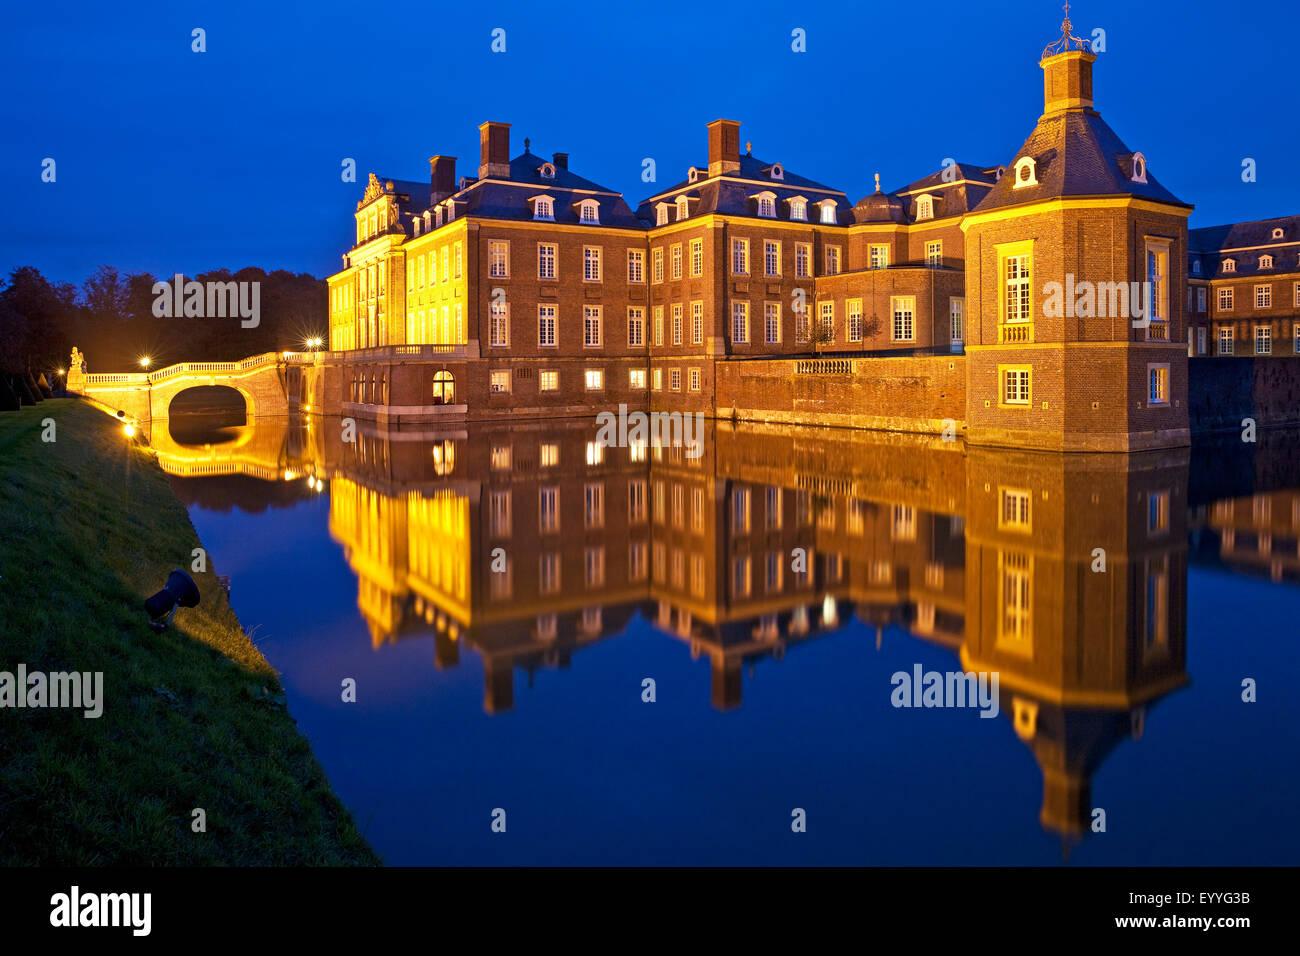 illuminated Castle Nordkirchen at blue hour, Germany, North Rhine-Westphalia, Muensterland, Nordkirchen Stock Photo